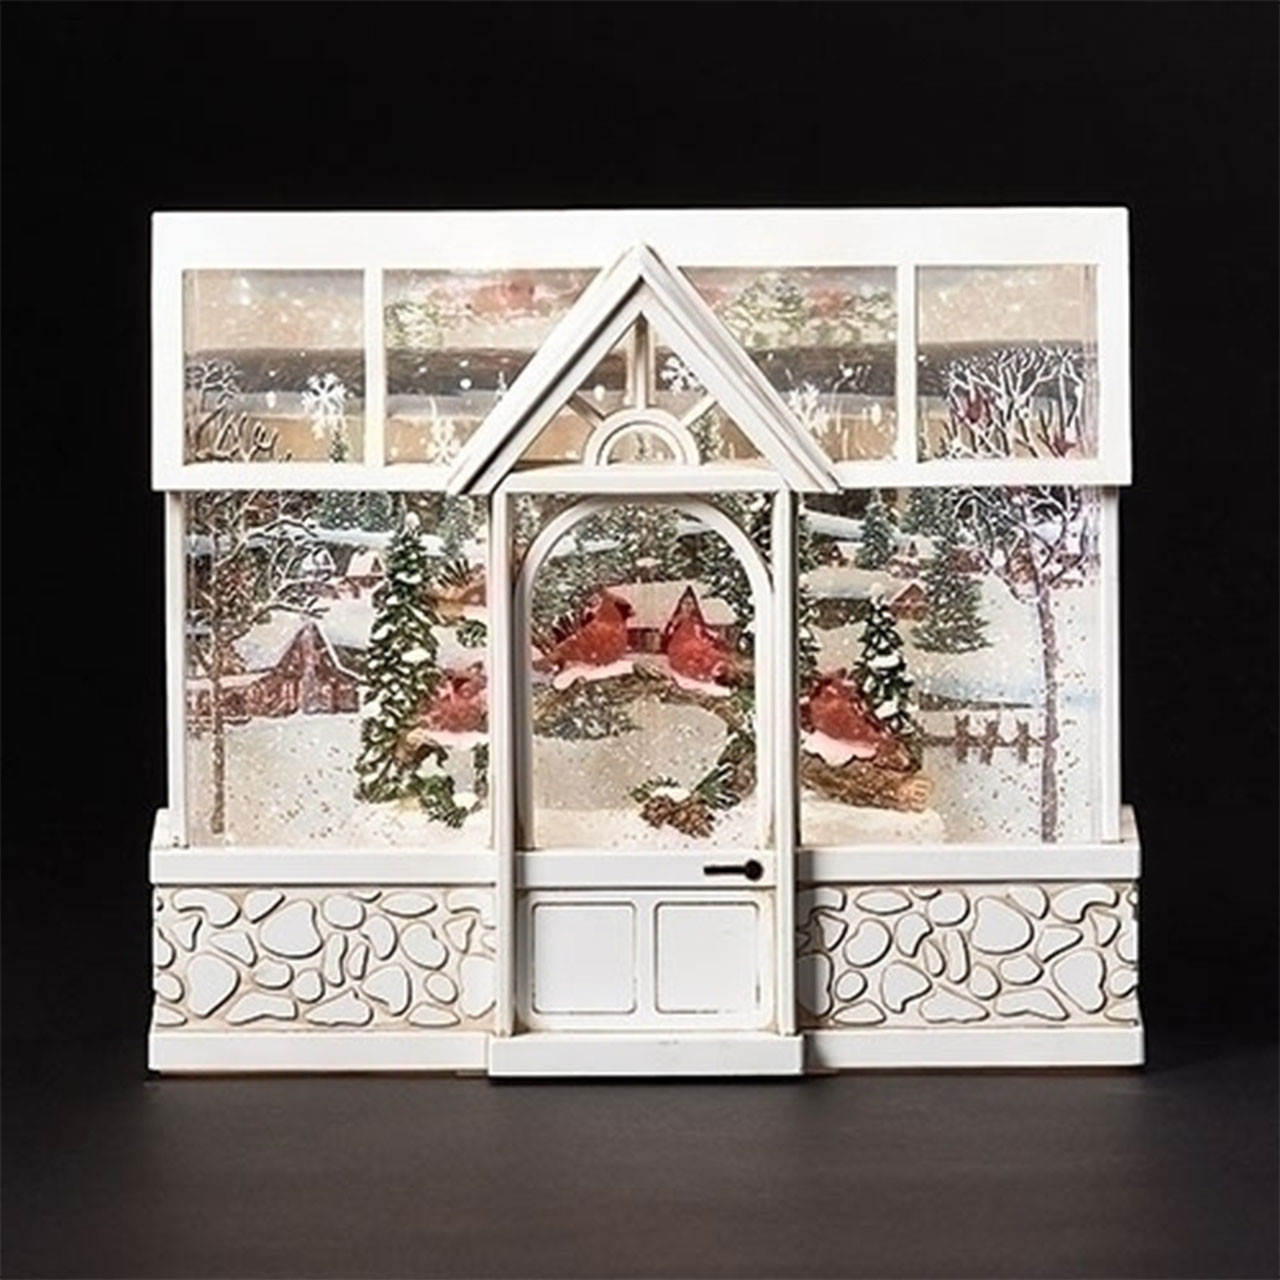 Christmas Greenhouse with Cardinals with USB cord or battery operation for LED lighting